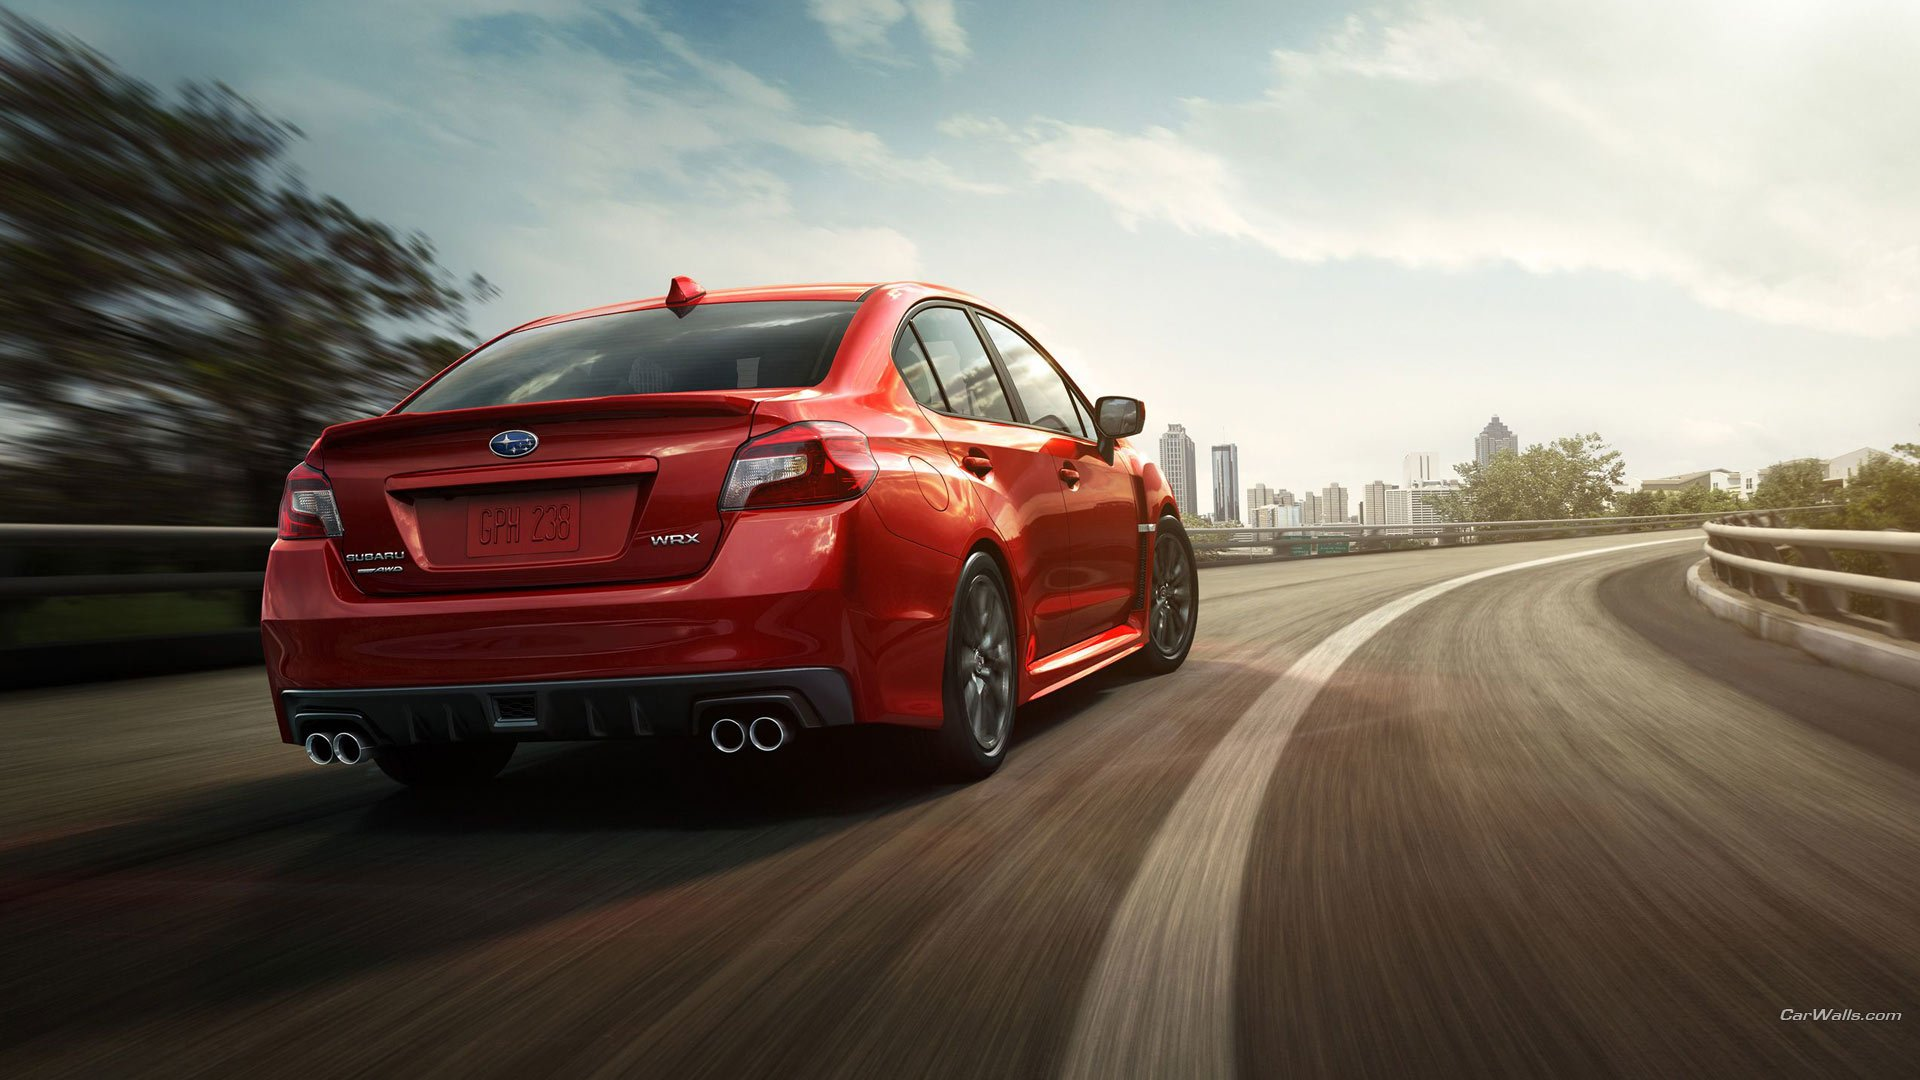 11 2015 Subaru Wrx Hd Wallpapers Background Images Wallpaper Abyss